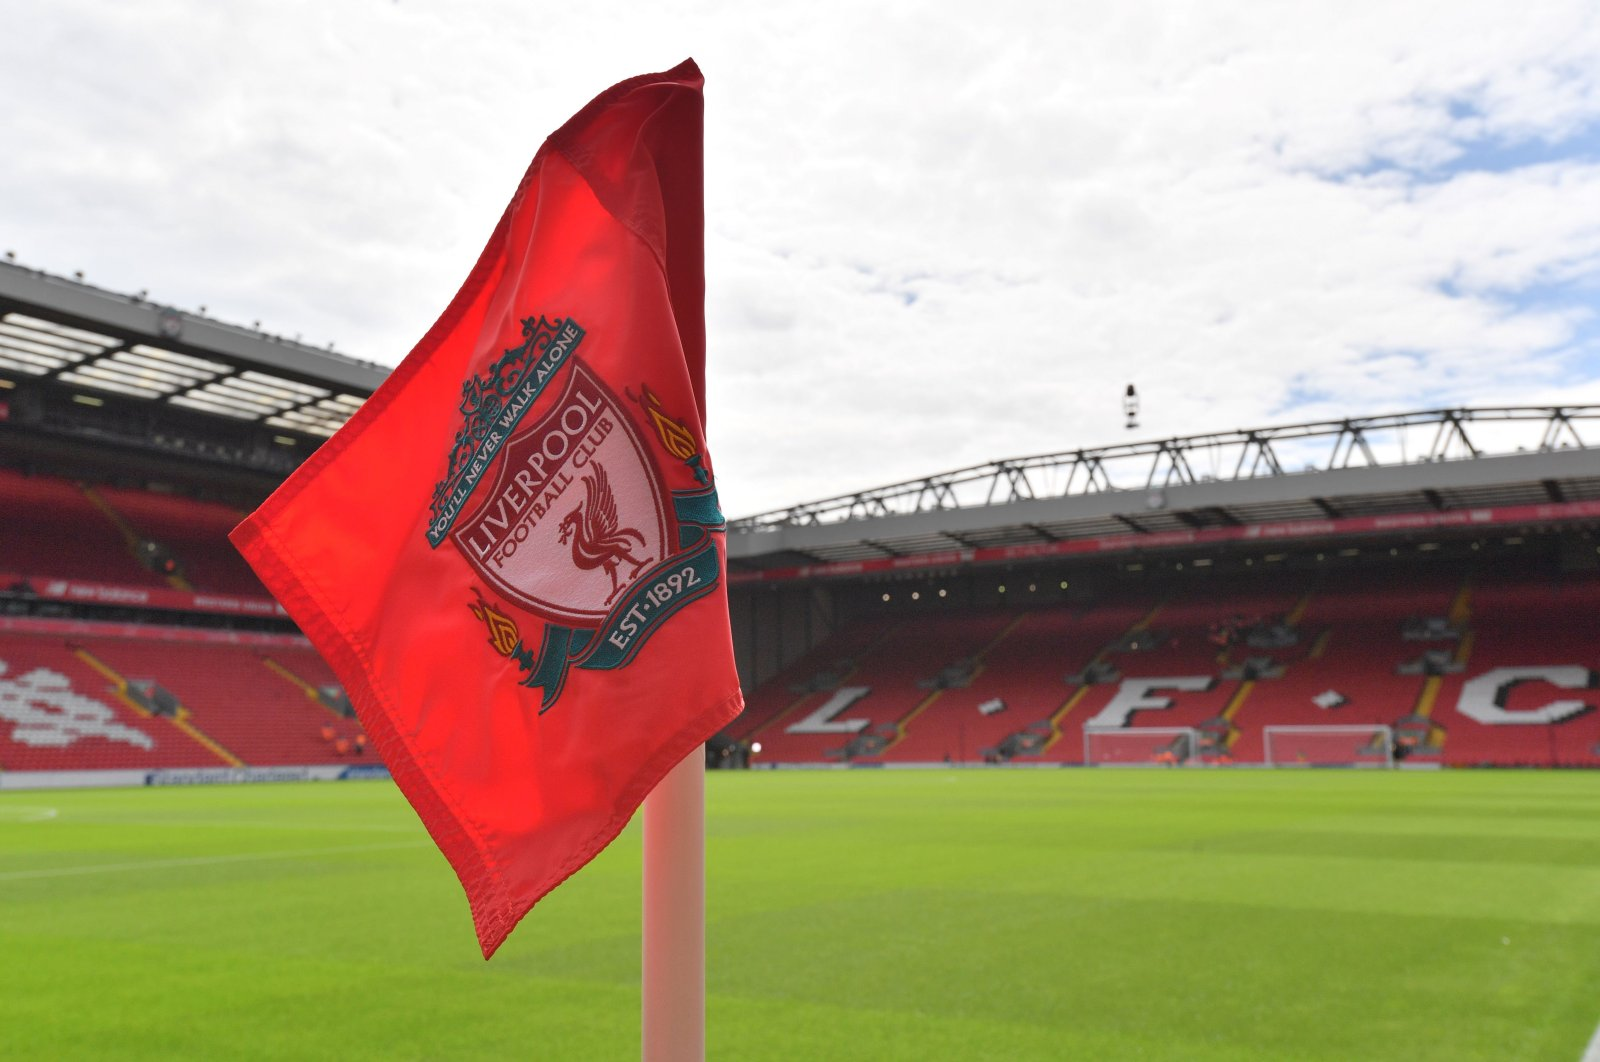 A corner flag displaying Liverpool's club crest at Anfield, Liverpool, Britain, August 27, 2017. (AFP Photo)